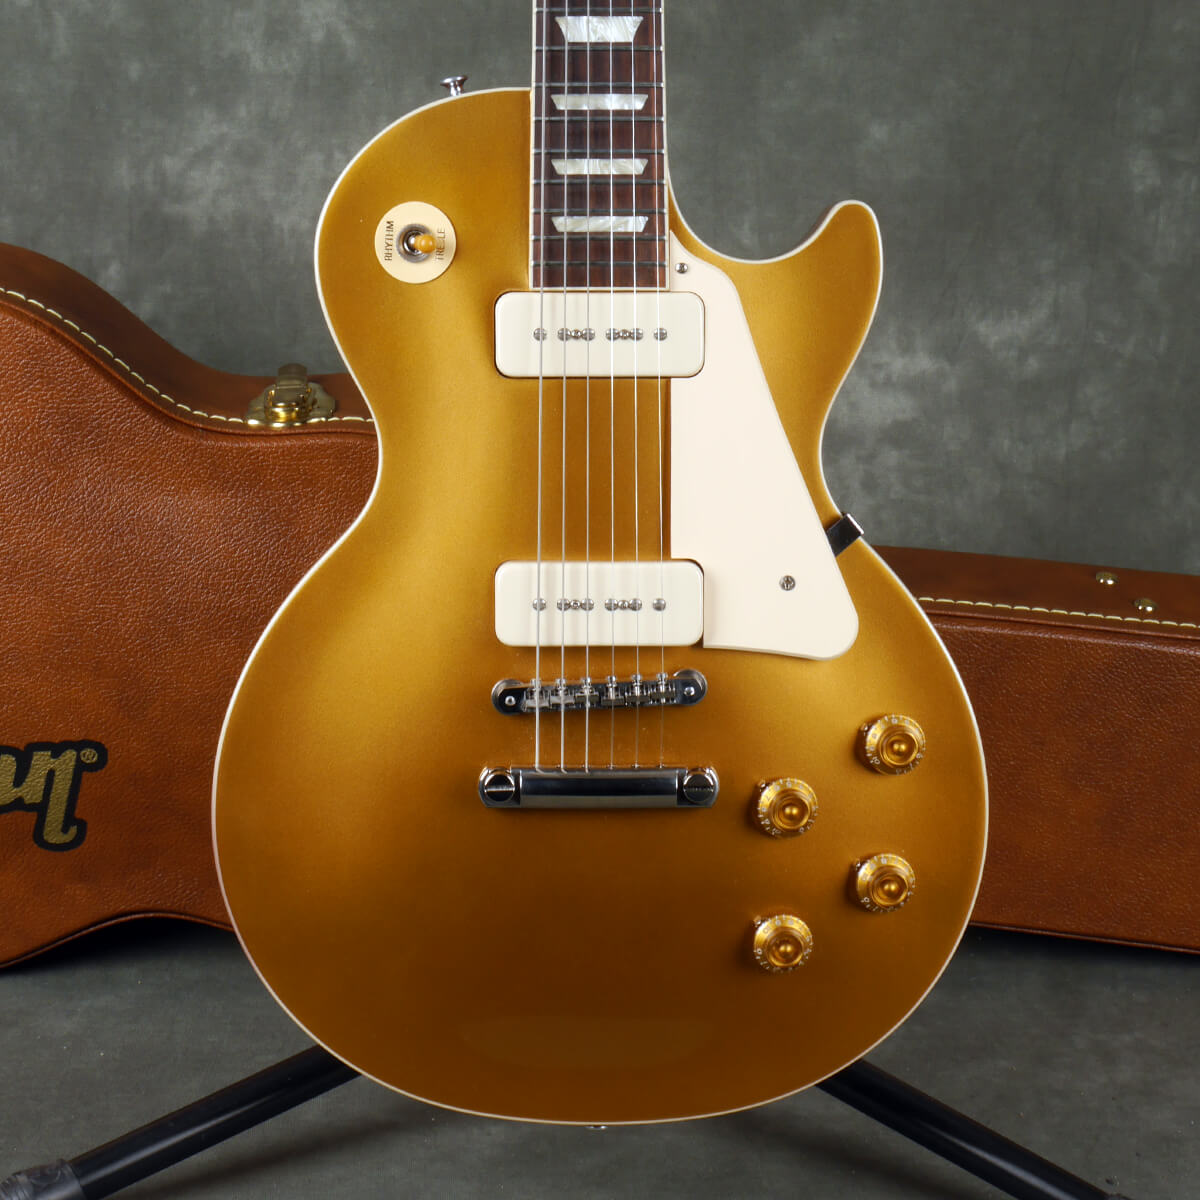 Gibson Les Paul Standard 50s P90 - Gold Top w/Hard Case - 2nd Hand